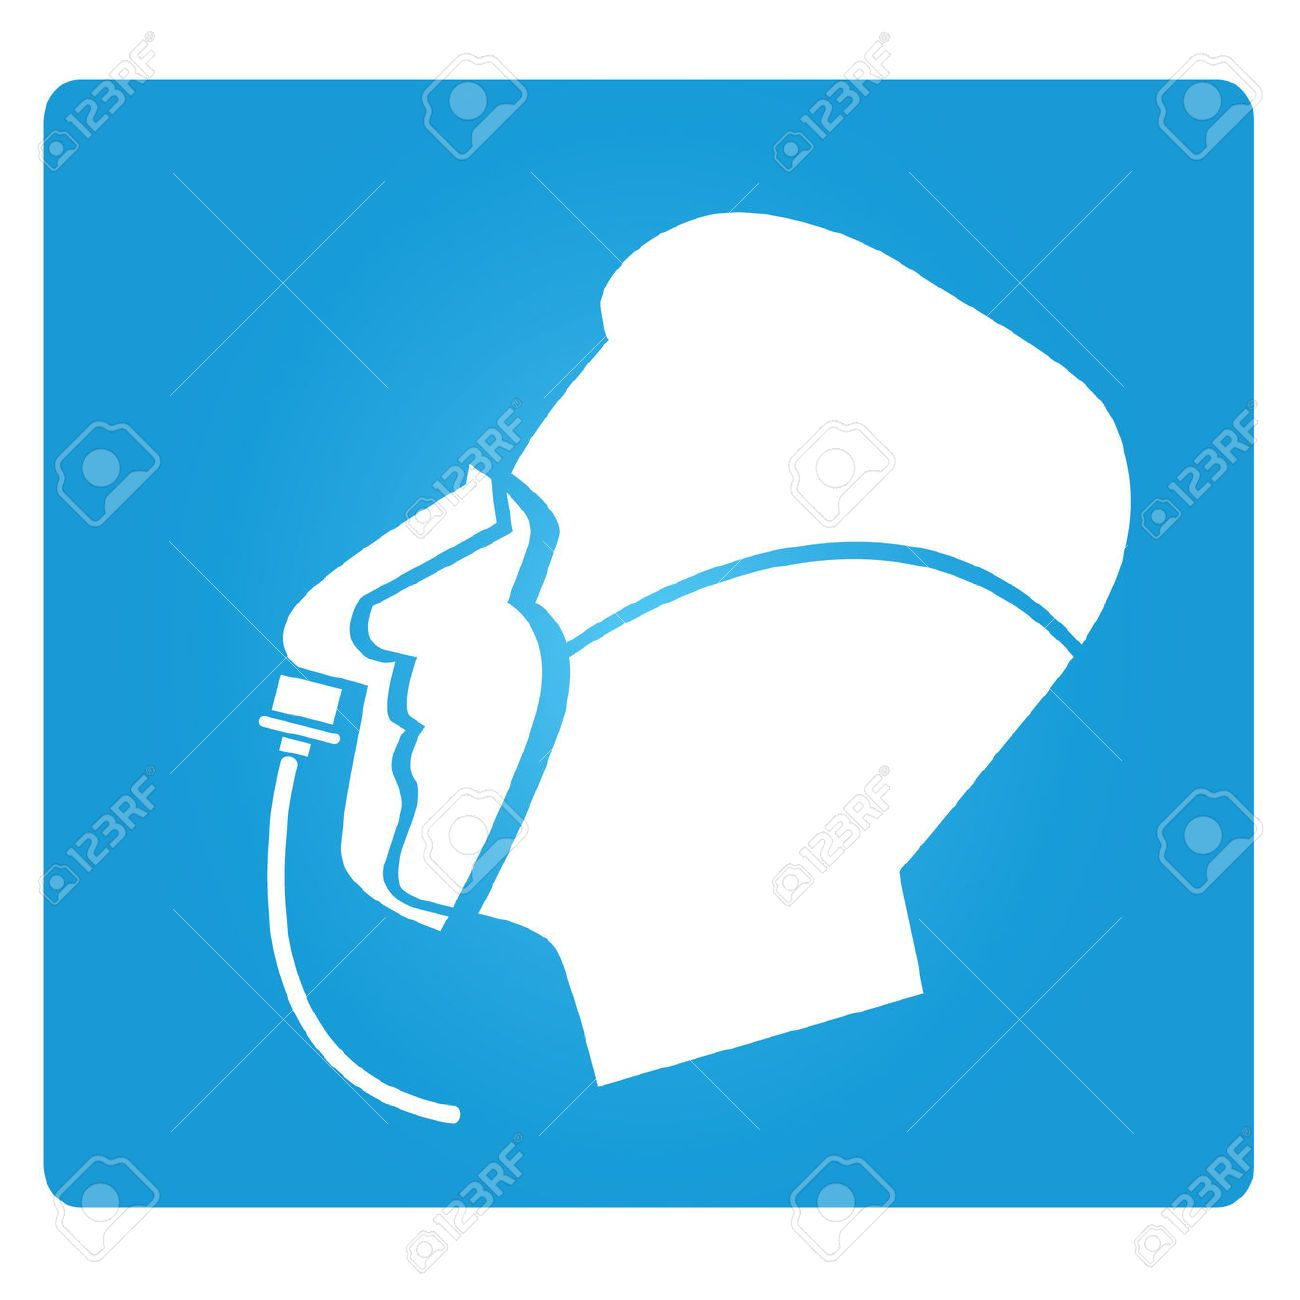 oxygen mask airplane stock photos u0026 pictures royalty free oxygen